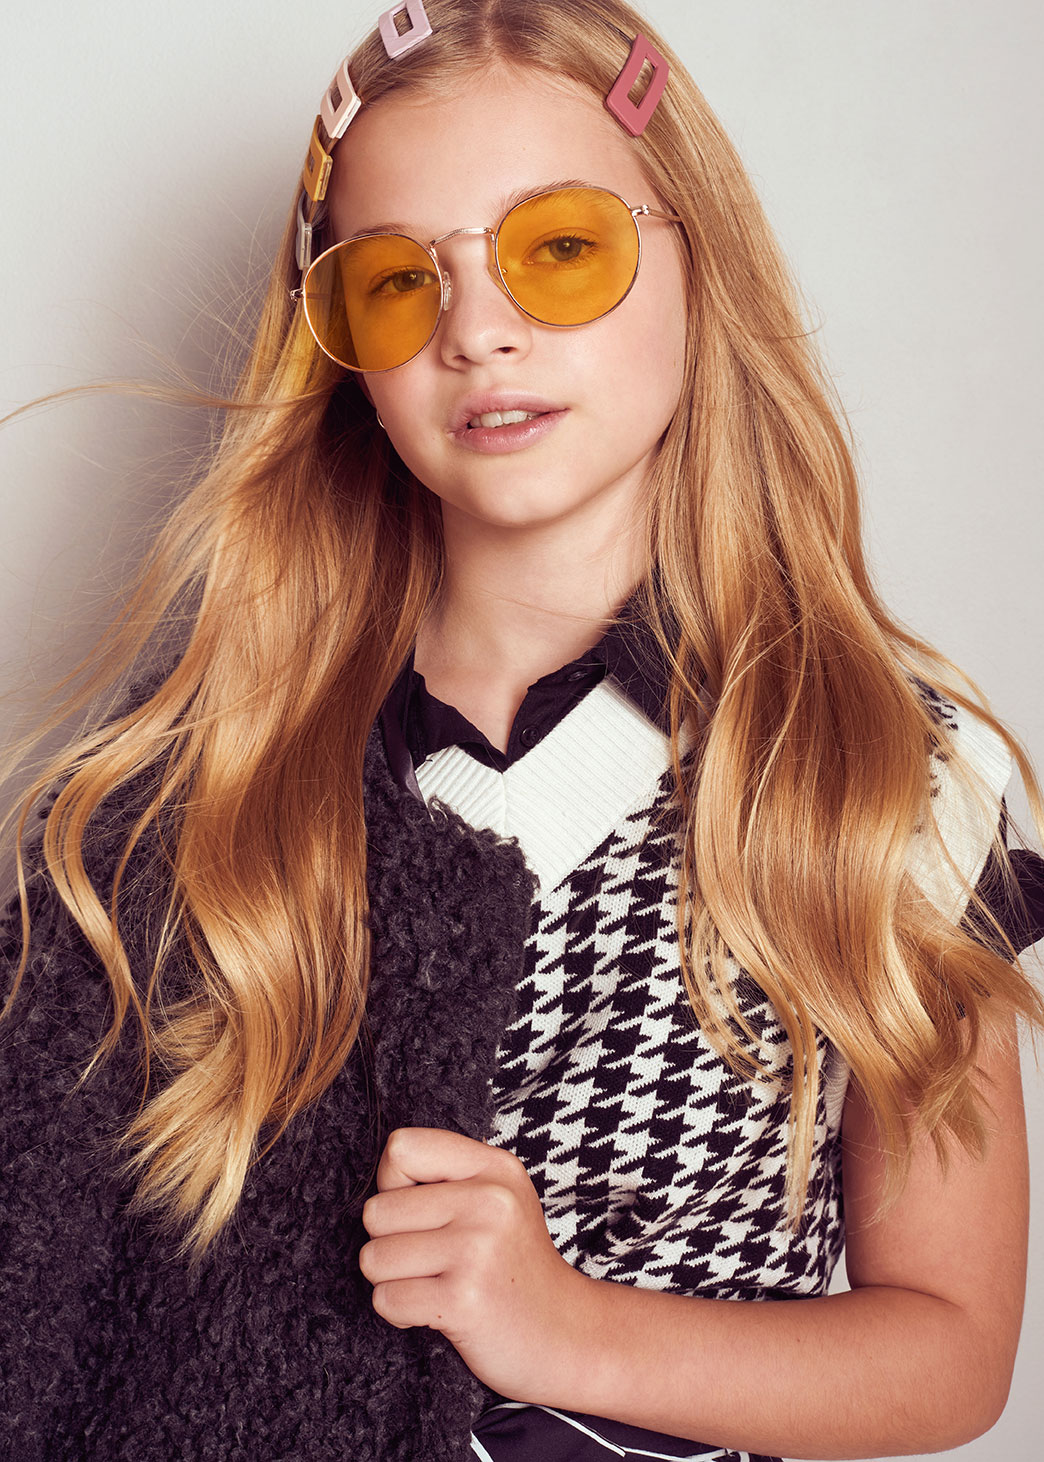 Cat-Larsen-Kids-Fashion-Photographer-1